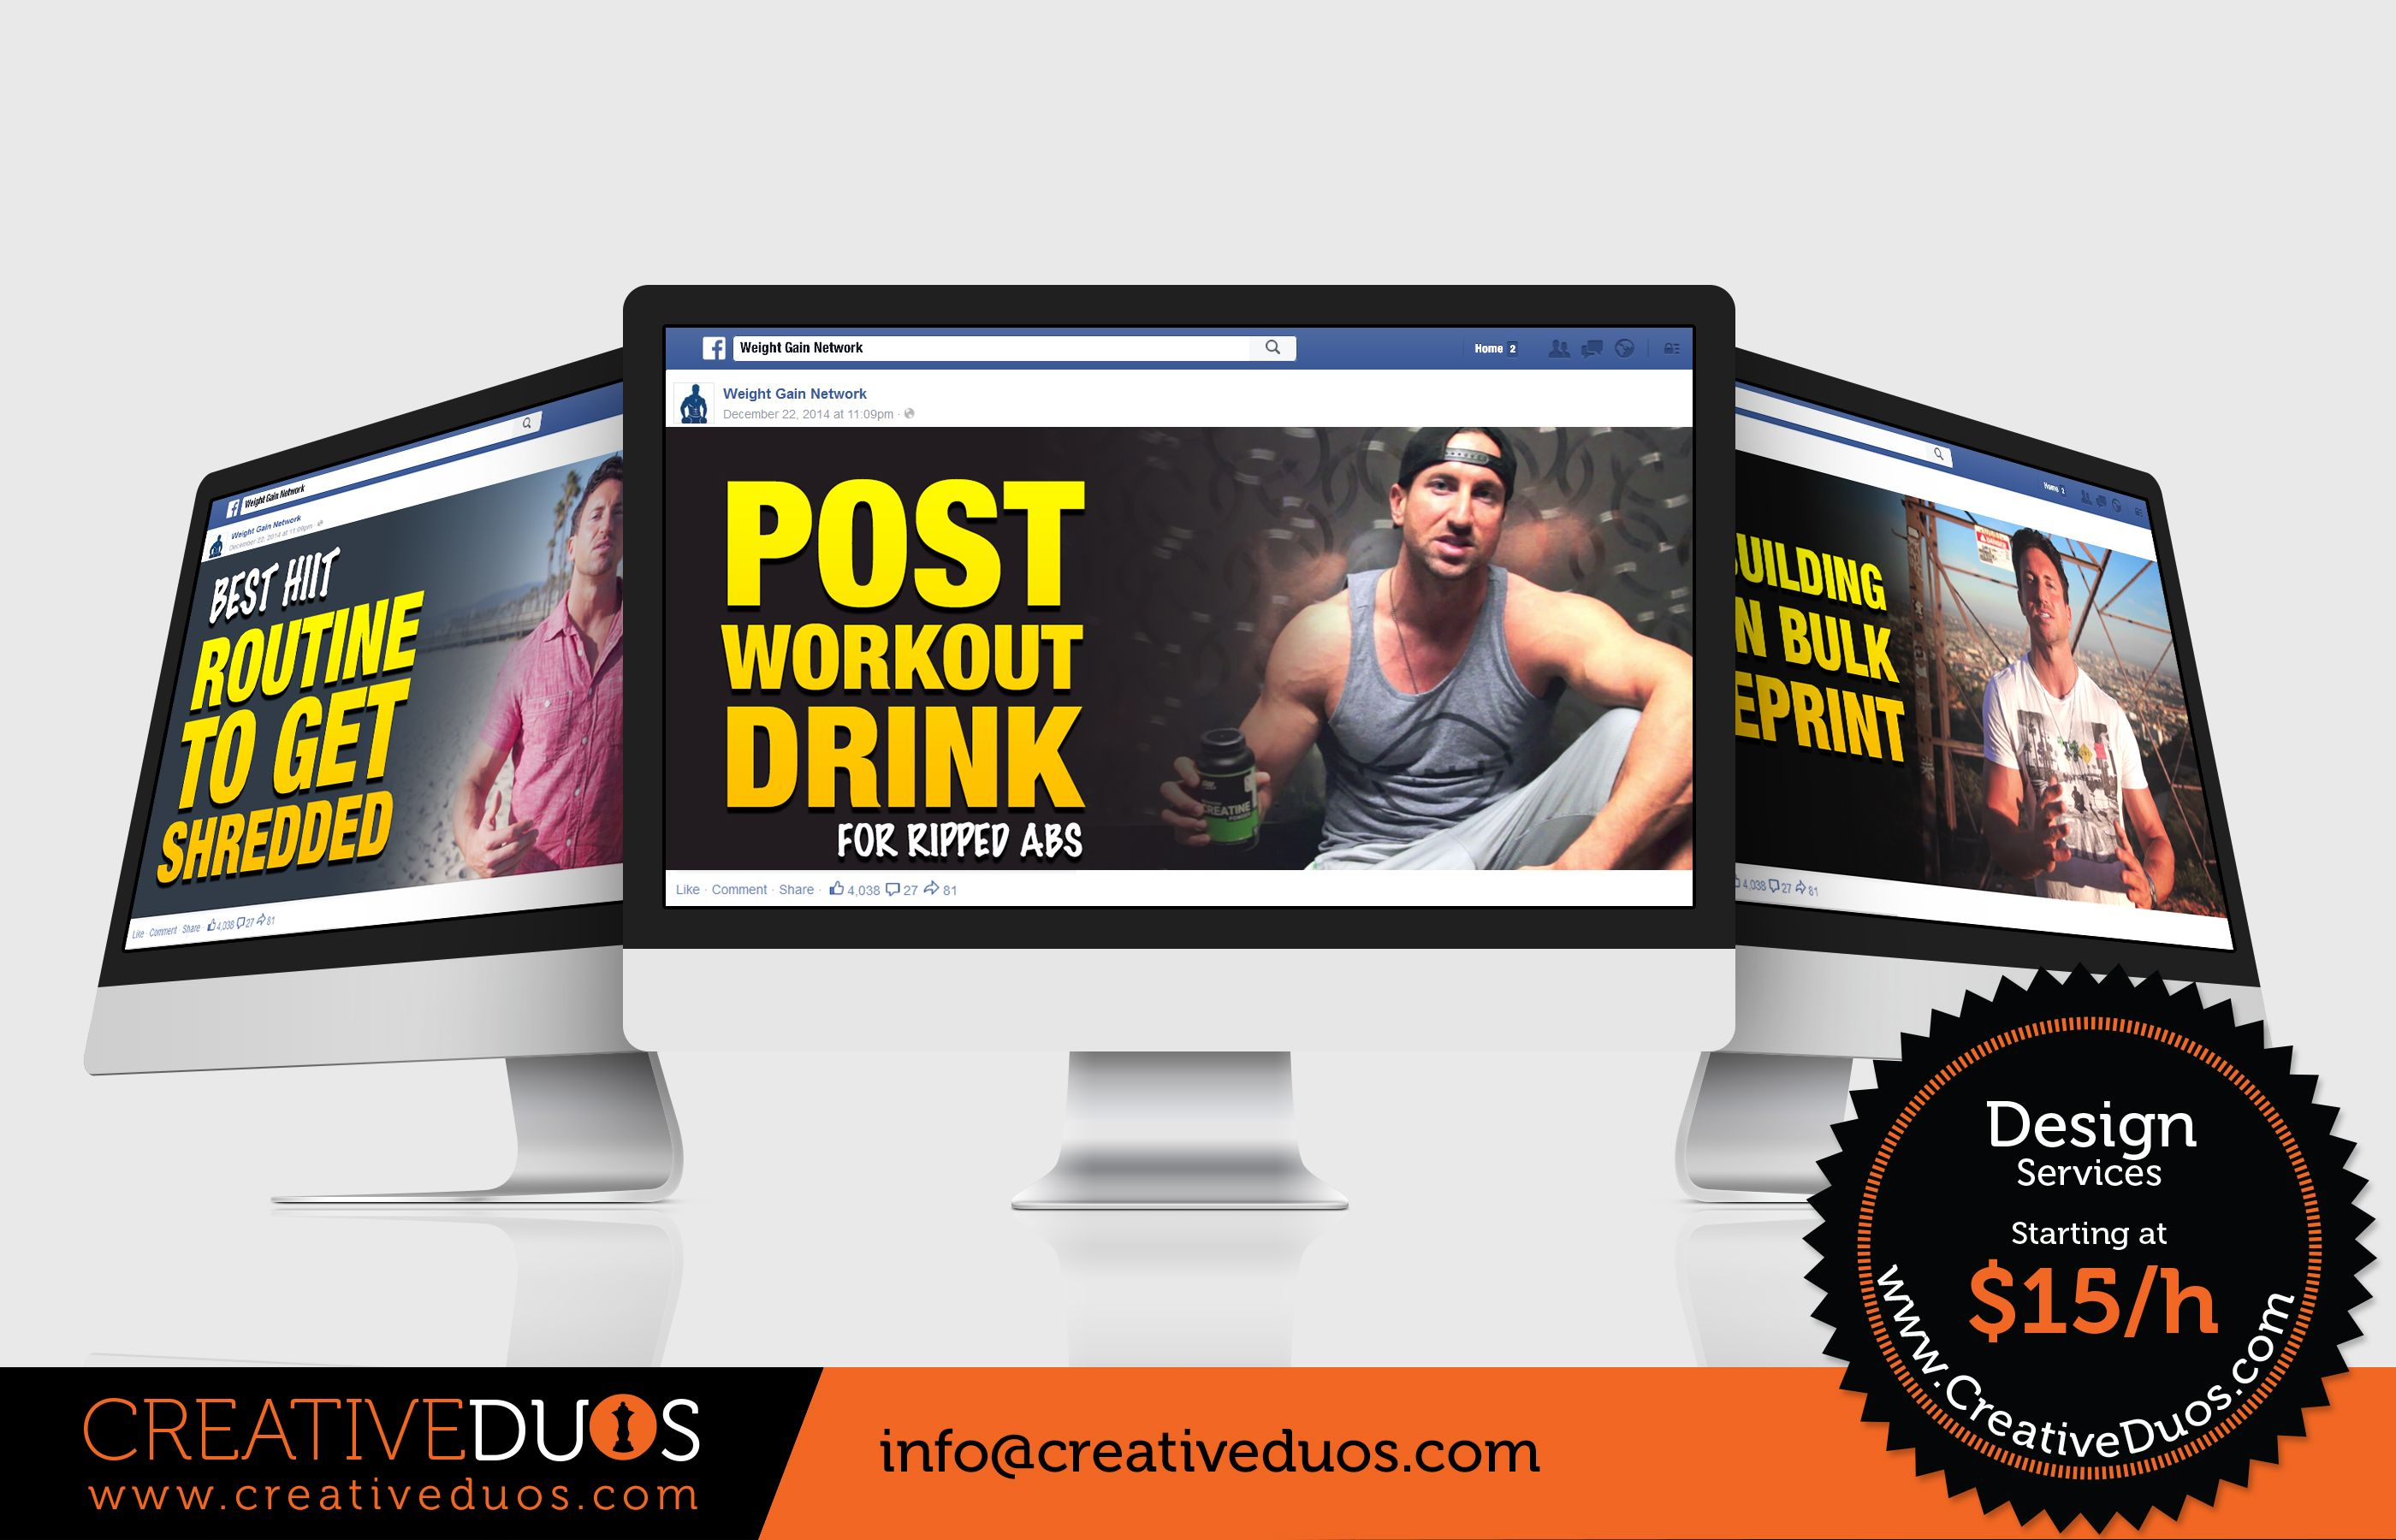 Facebook Campaign posts for Weight Gain Network https://www.facebook.com/weightgainnetwork by CreativeDuos.com